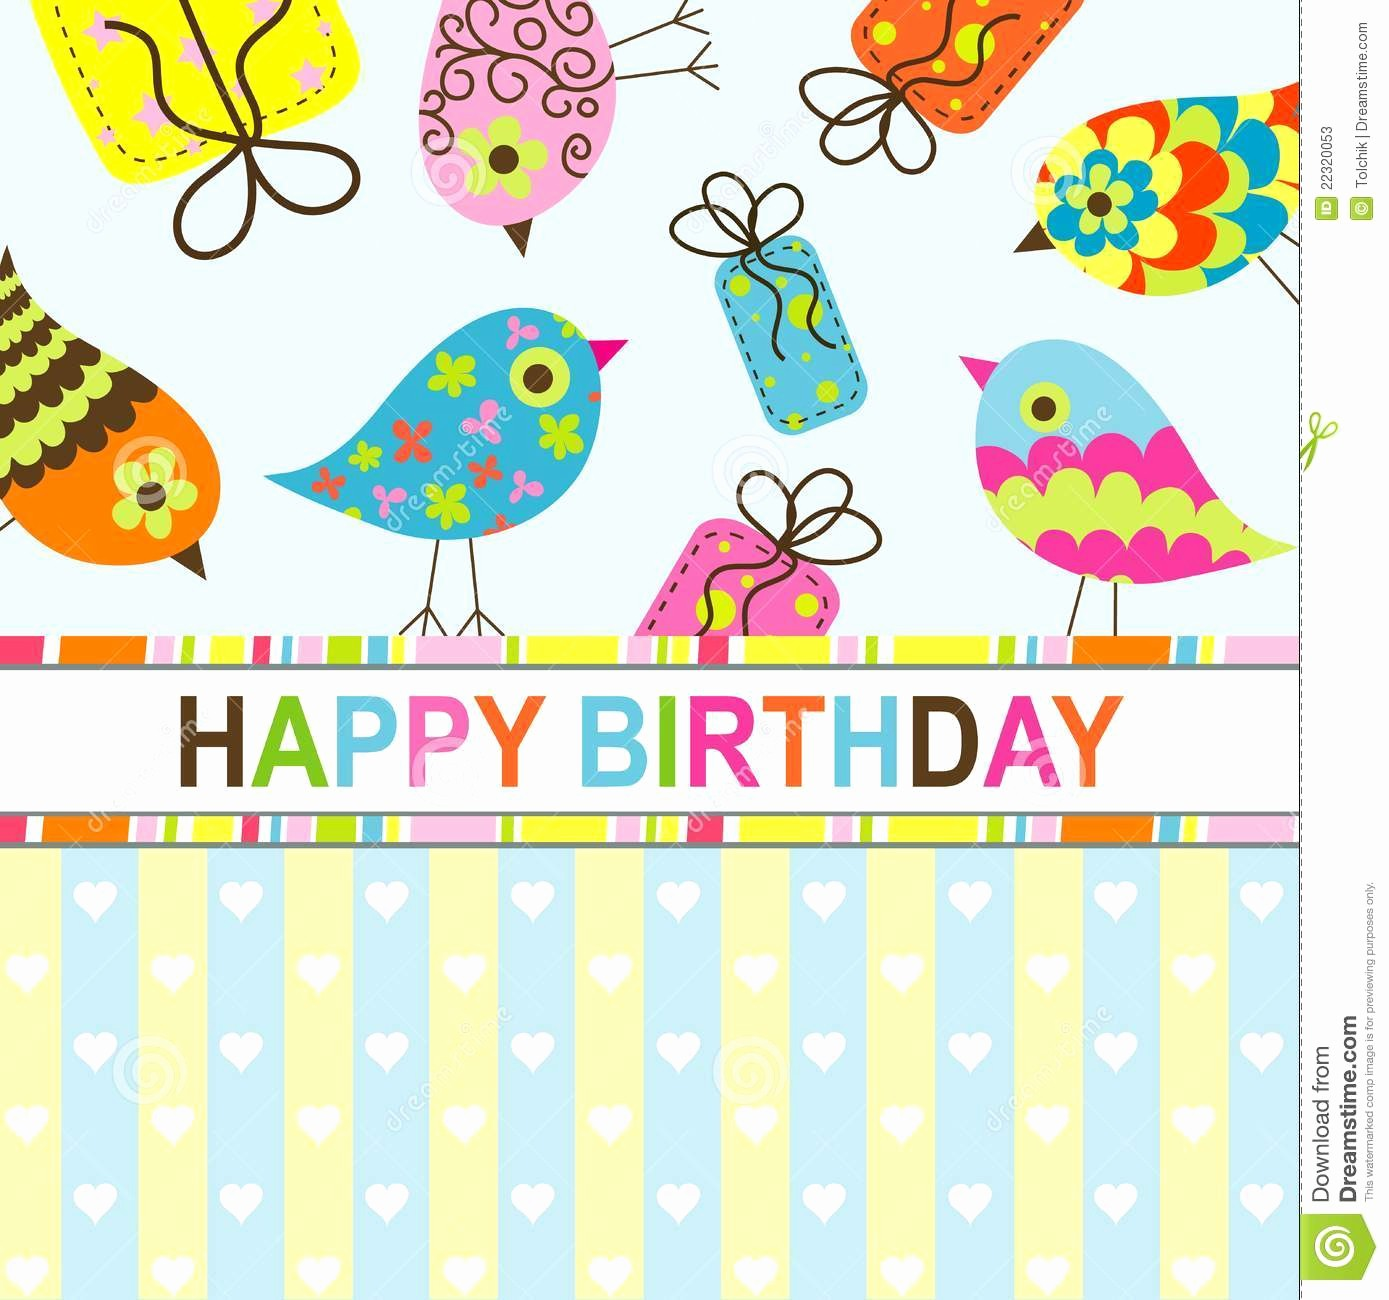 Birthday Card Template with Photo Unique Template Birthday Greeting Card Stock Vector